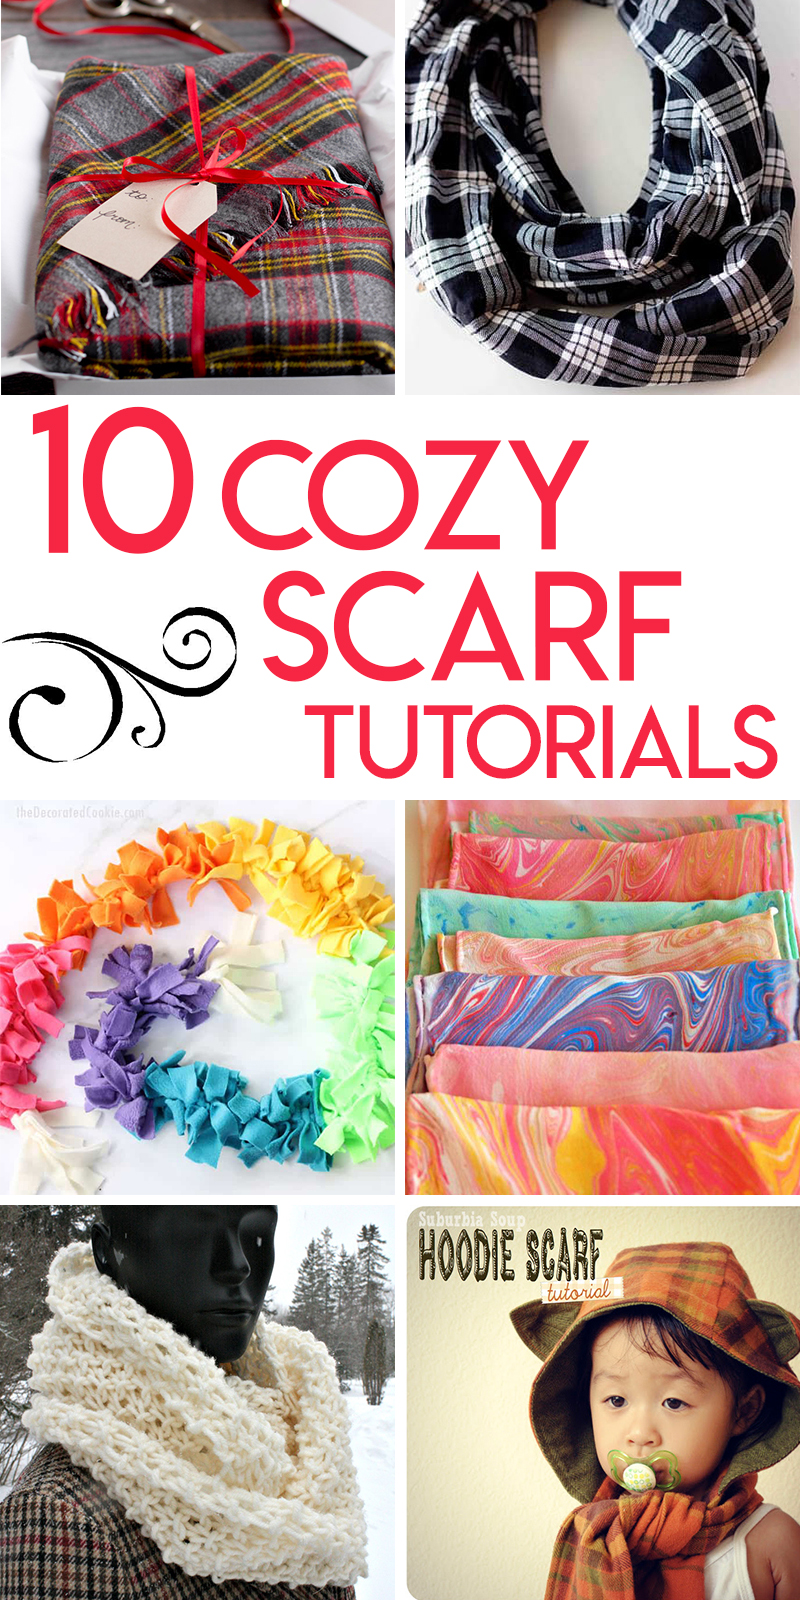 10 Cozy scarf tutorials to keep you warm this winter